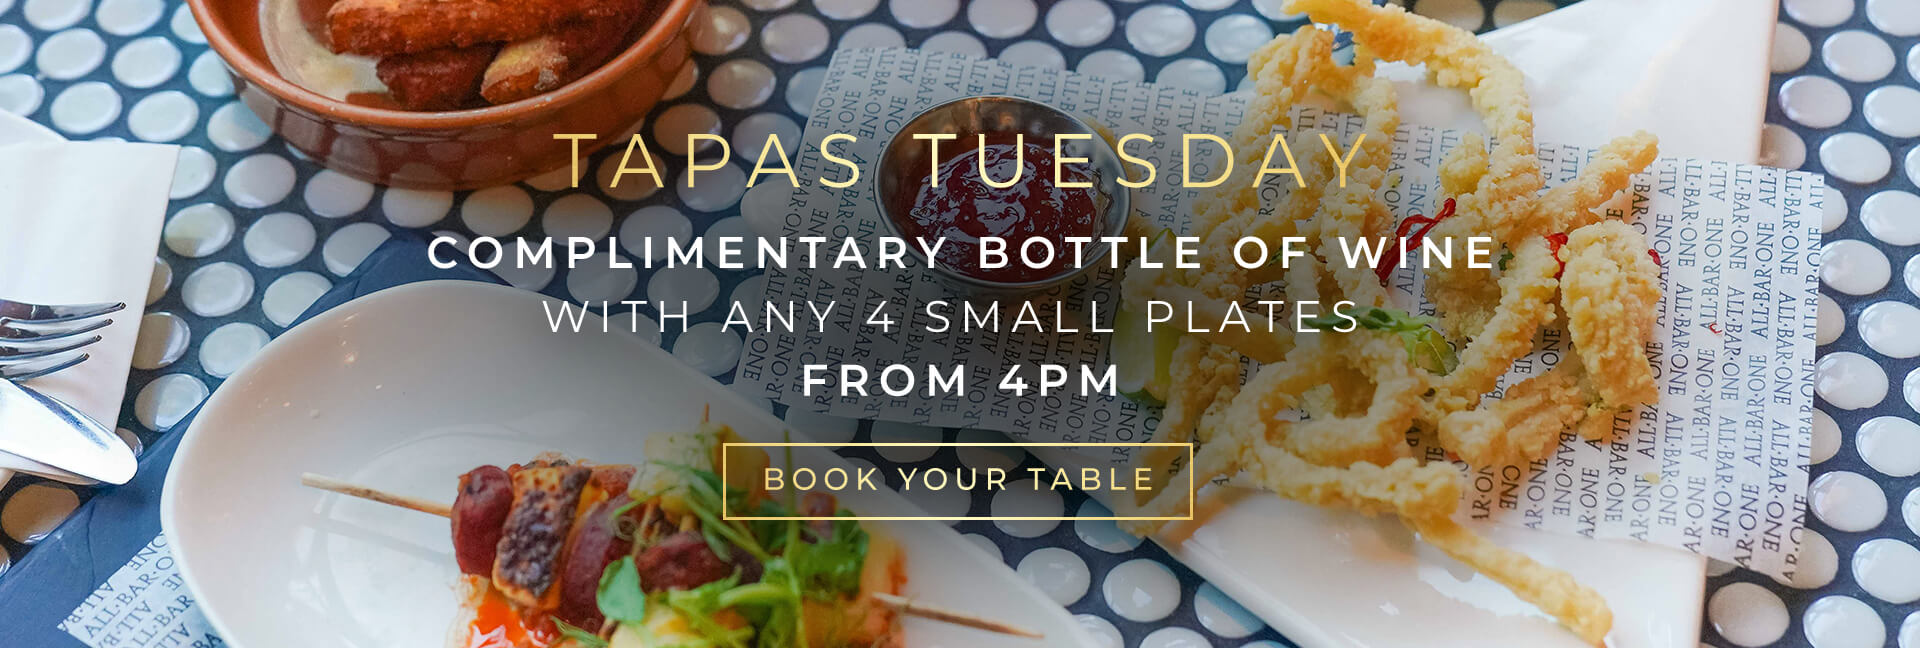 Tapas Tuesday at All Bar One The O2 - Book now